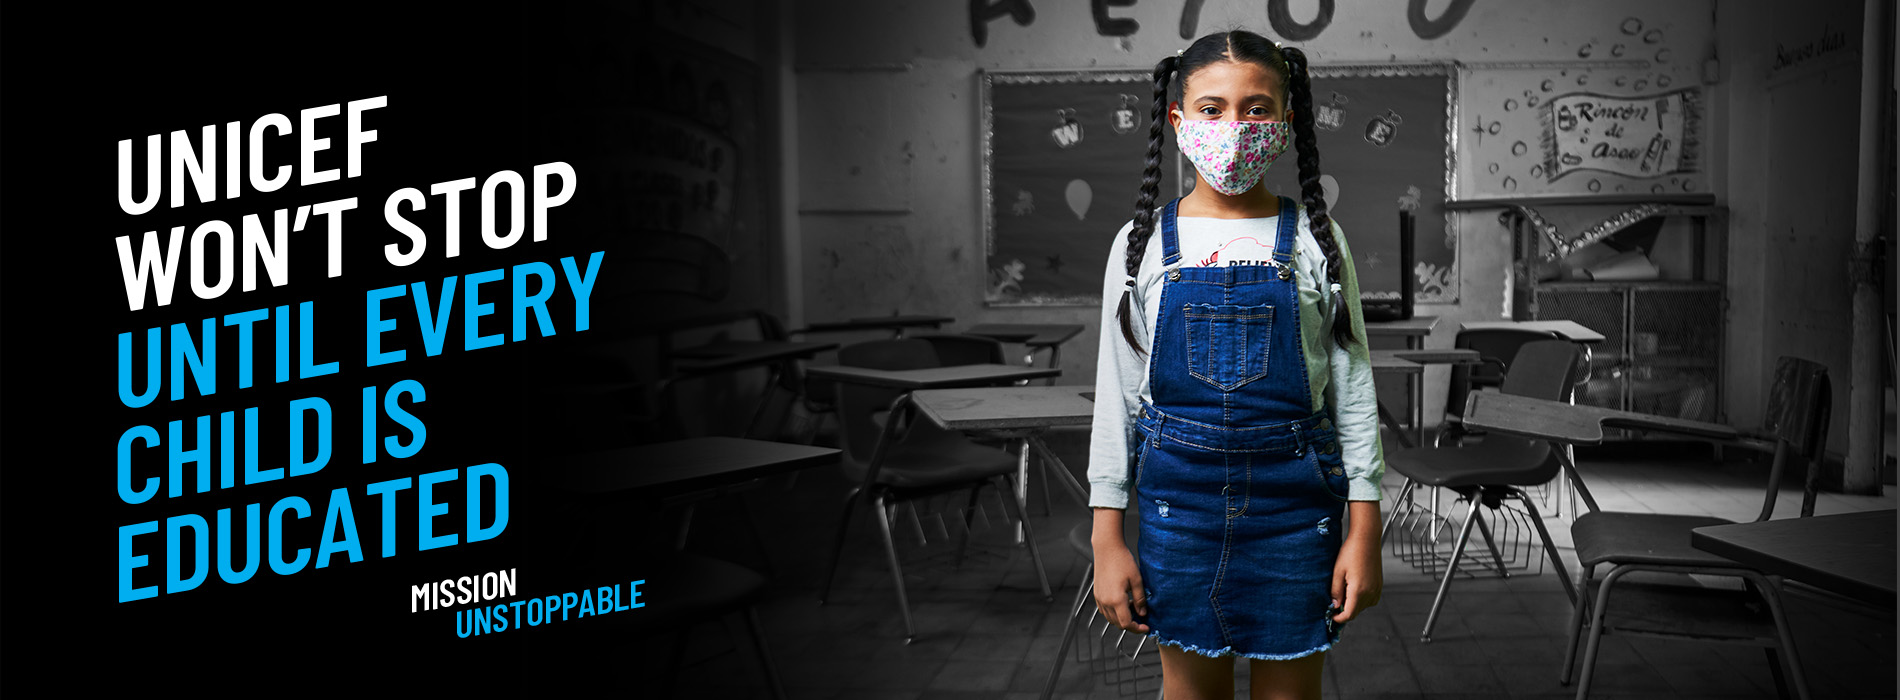 UNICEF won't stop until every child is educated. Mission Unstoppable